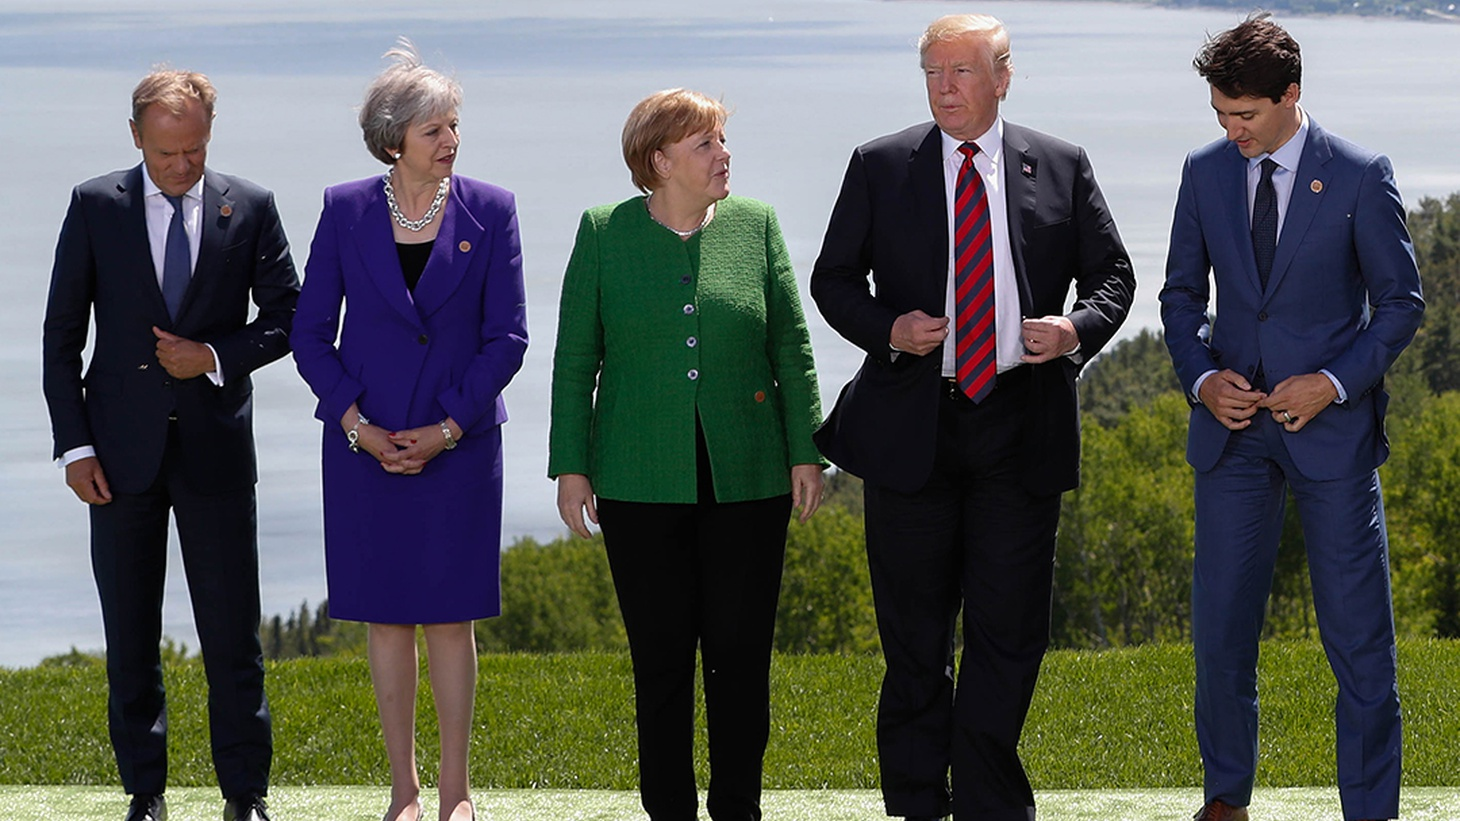 President Trump says Russia should be invited back to the group of world leaders.